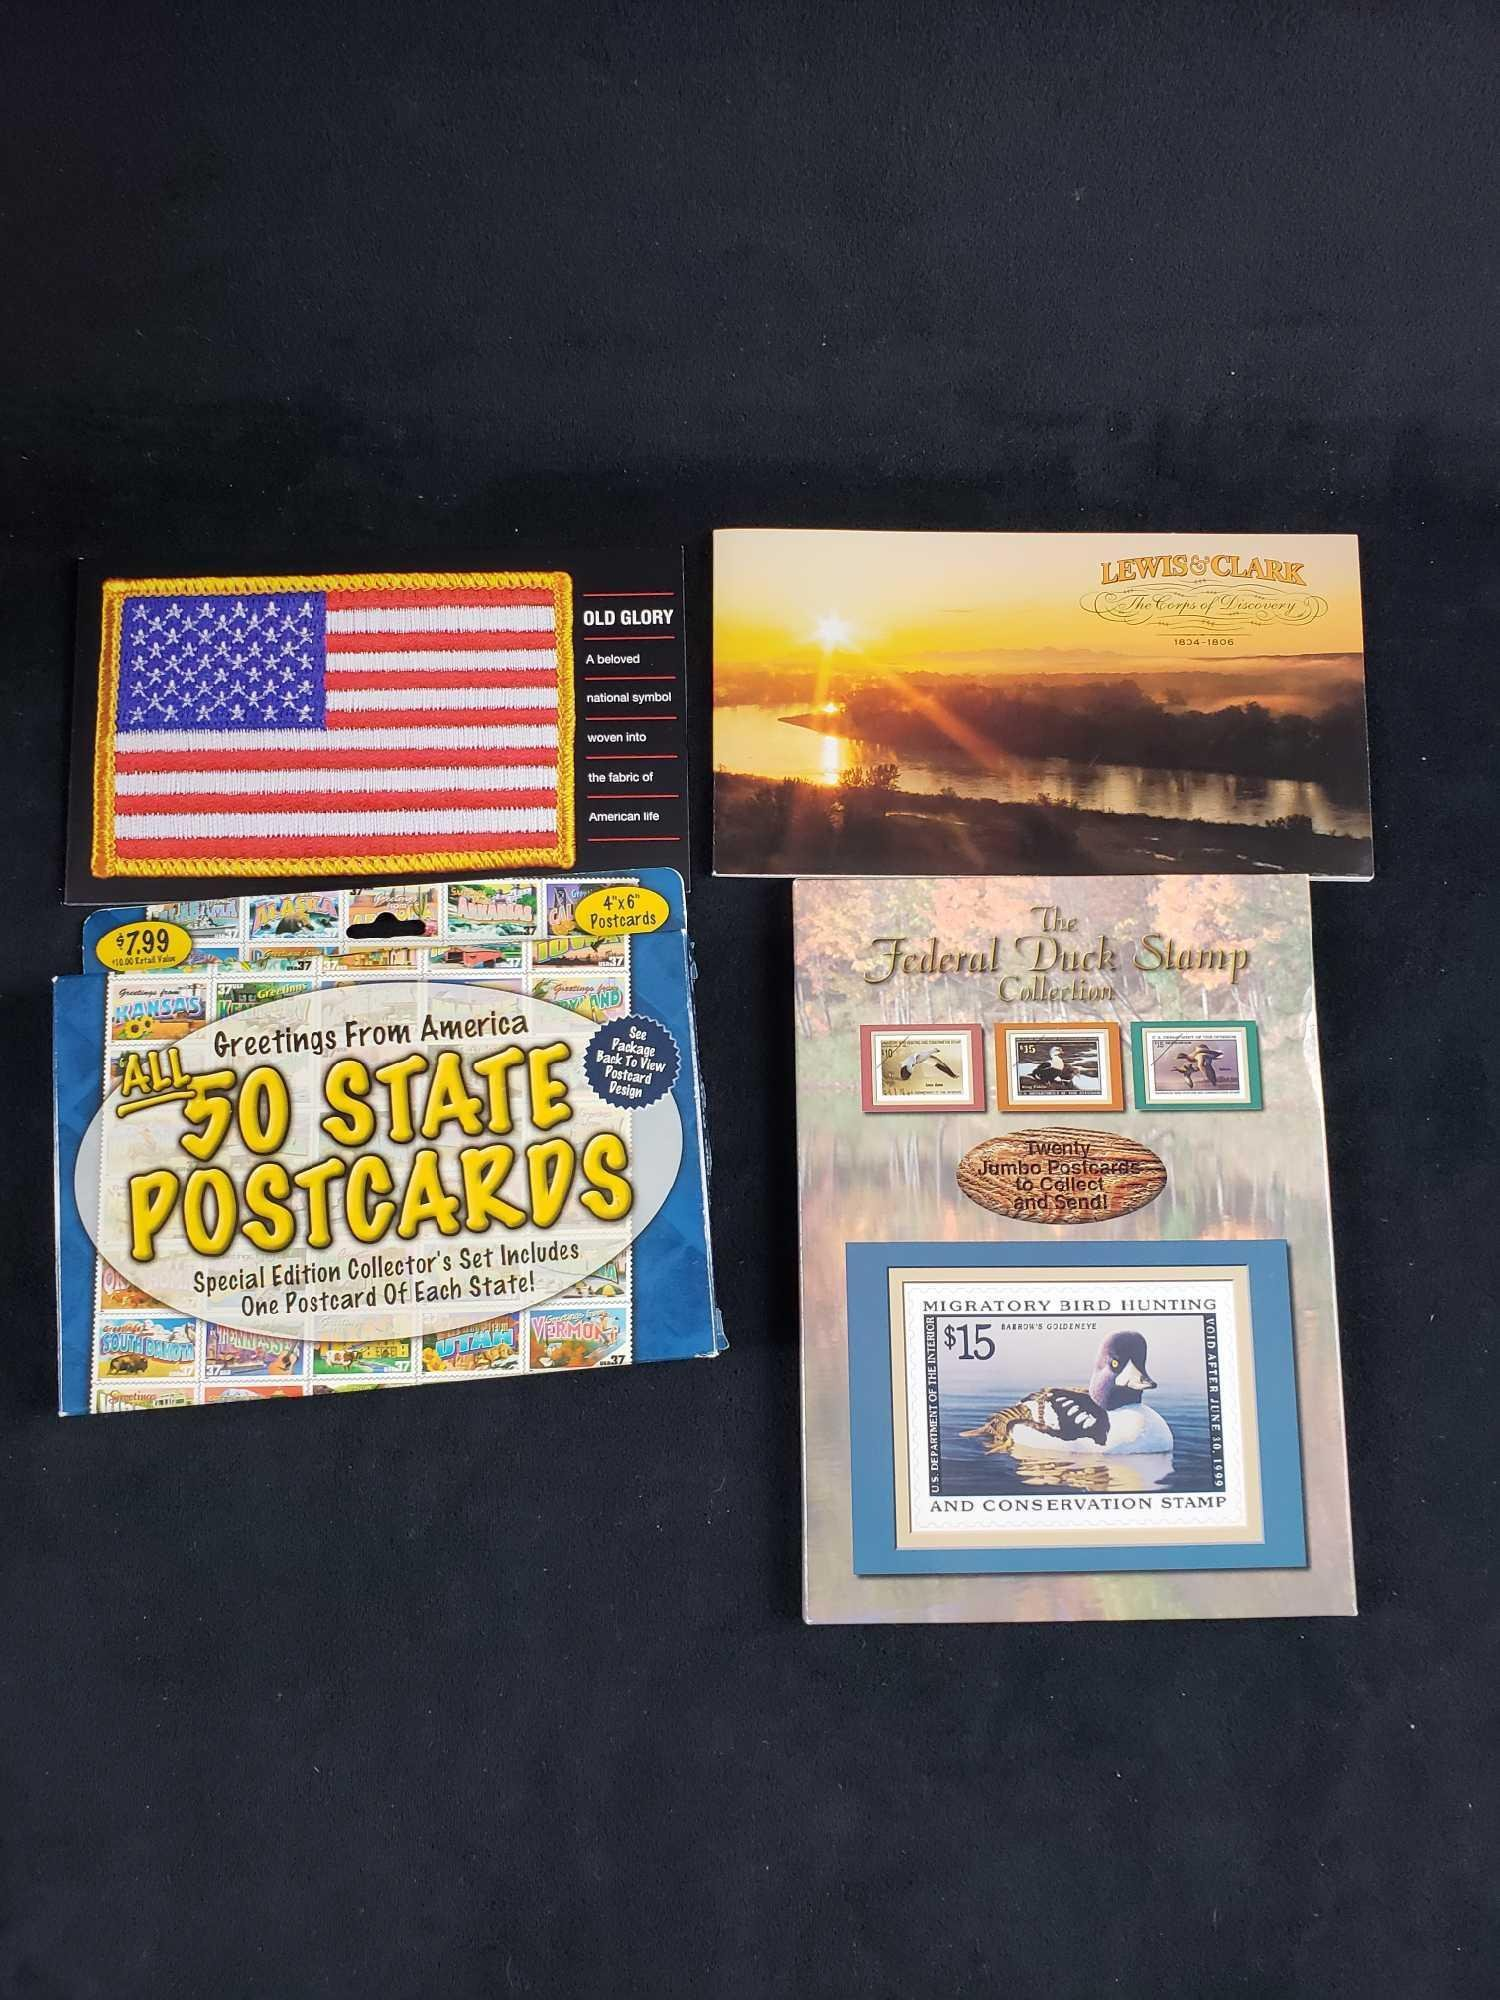 Collection of US Postal Stamp Books and Postcards of 4